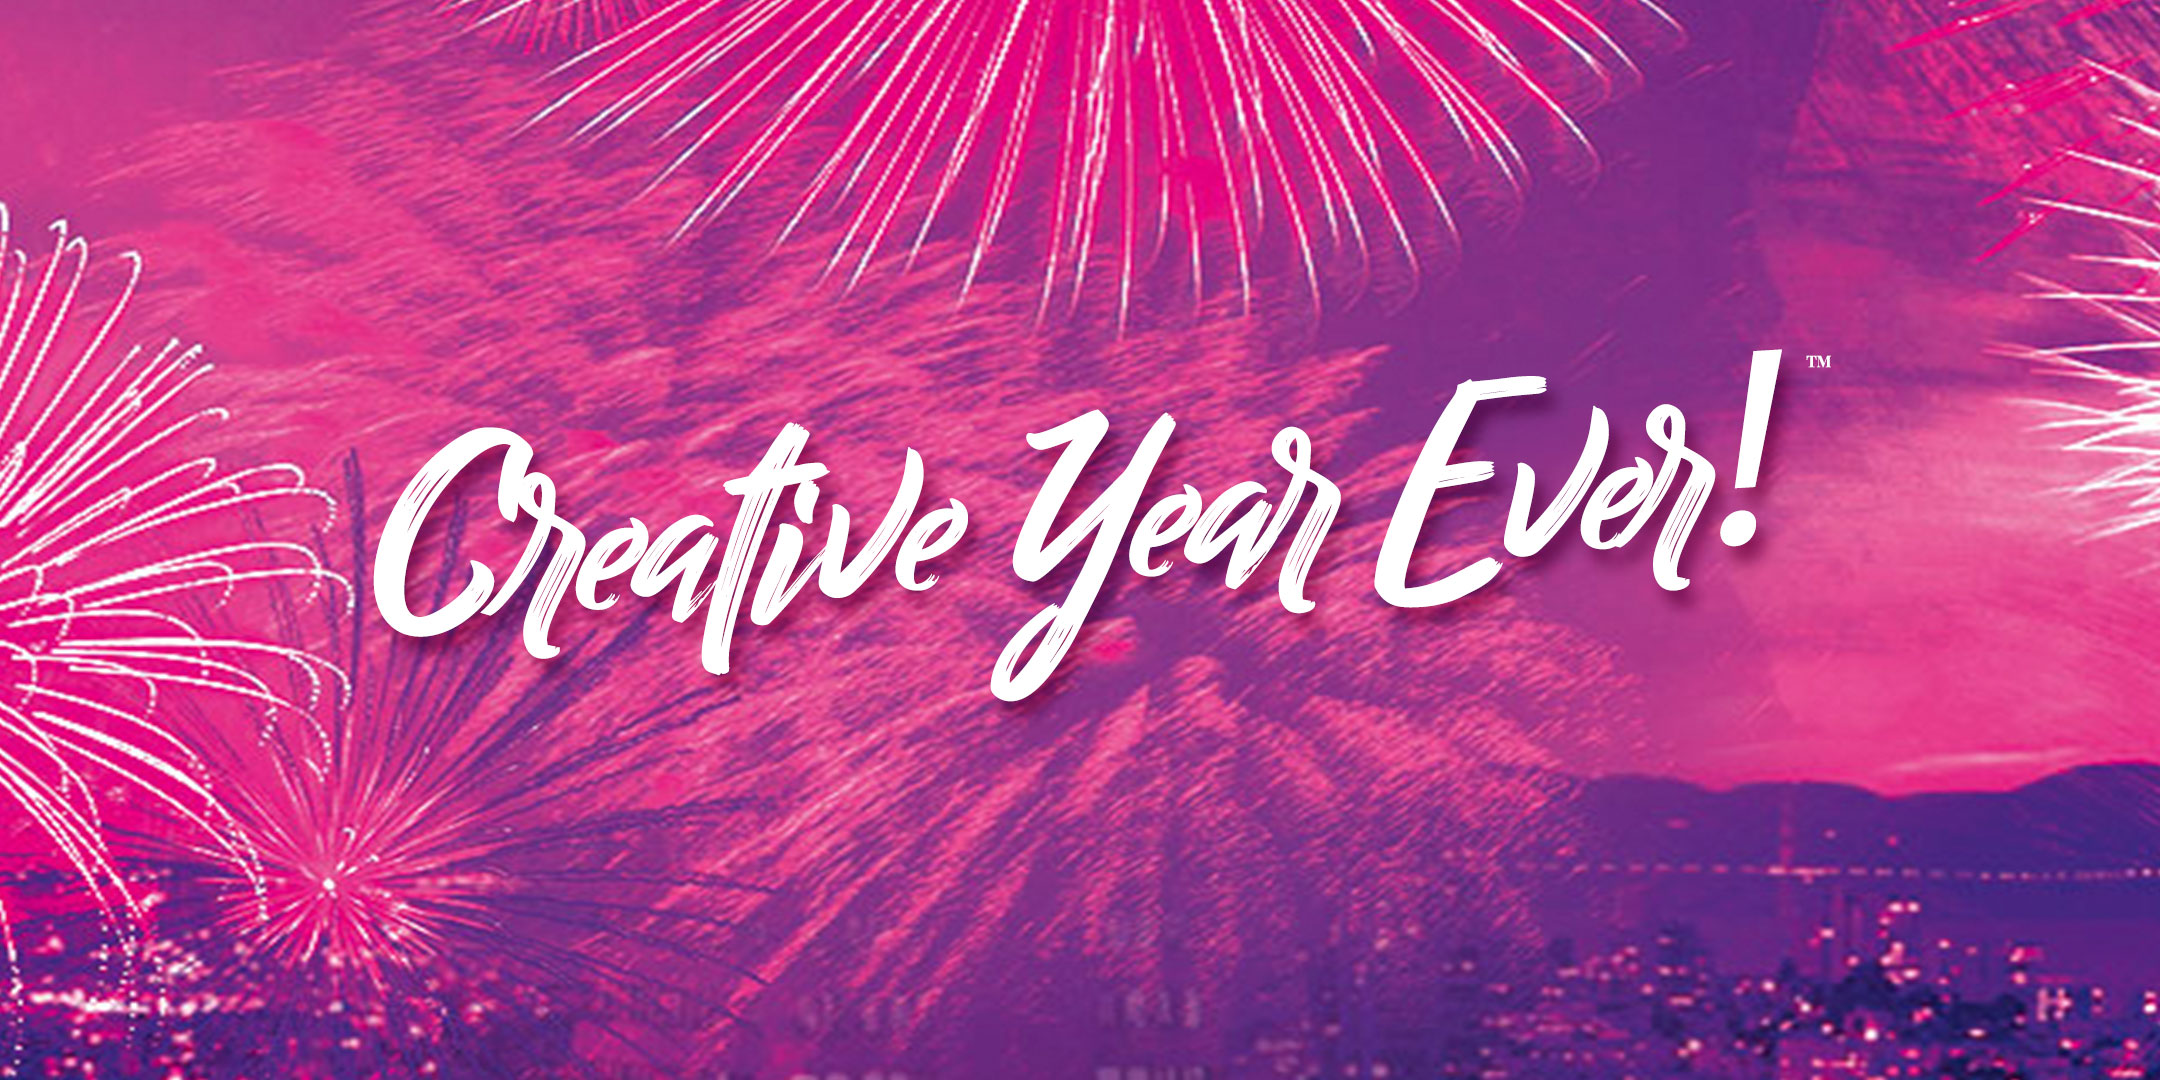 Your Creative Year Ever